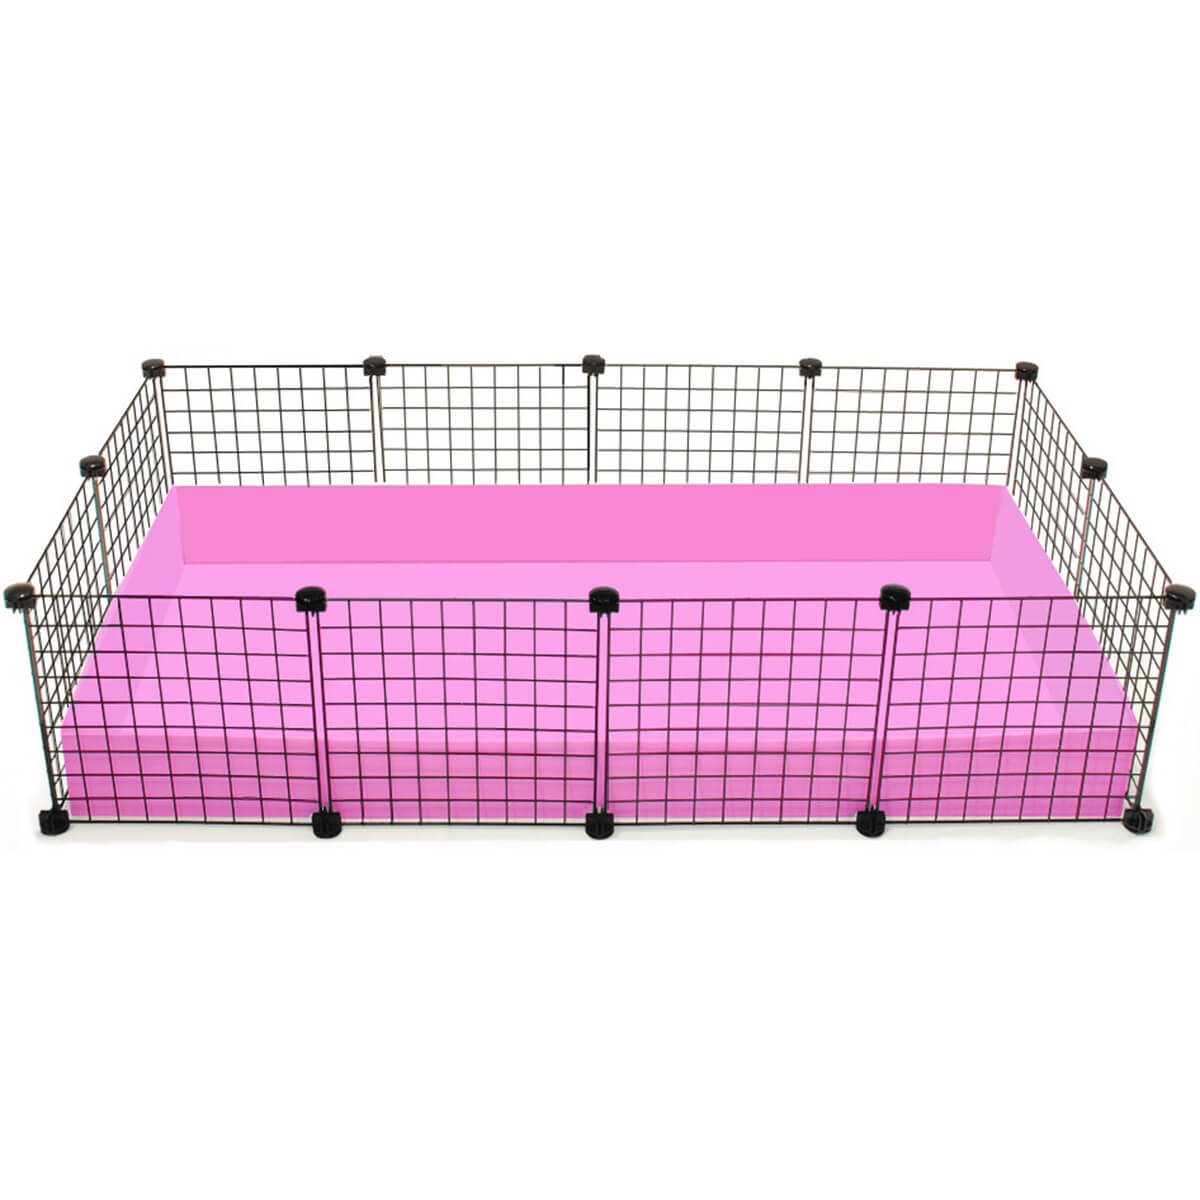 Large (2x4 Grids) Cage - 100300